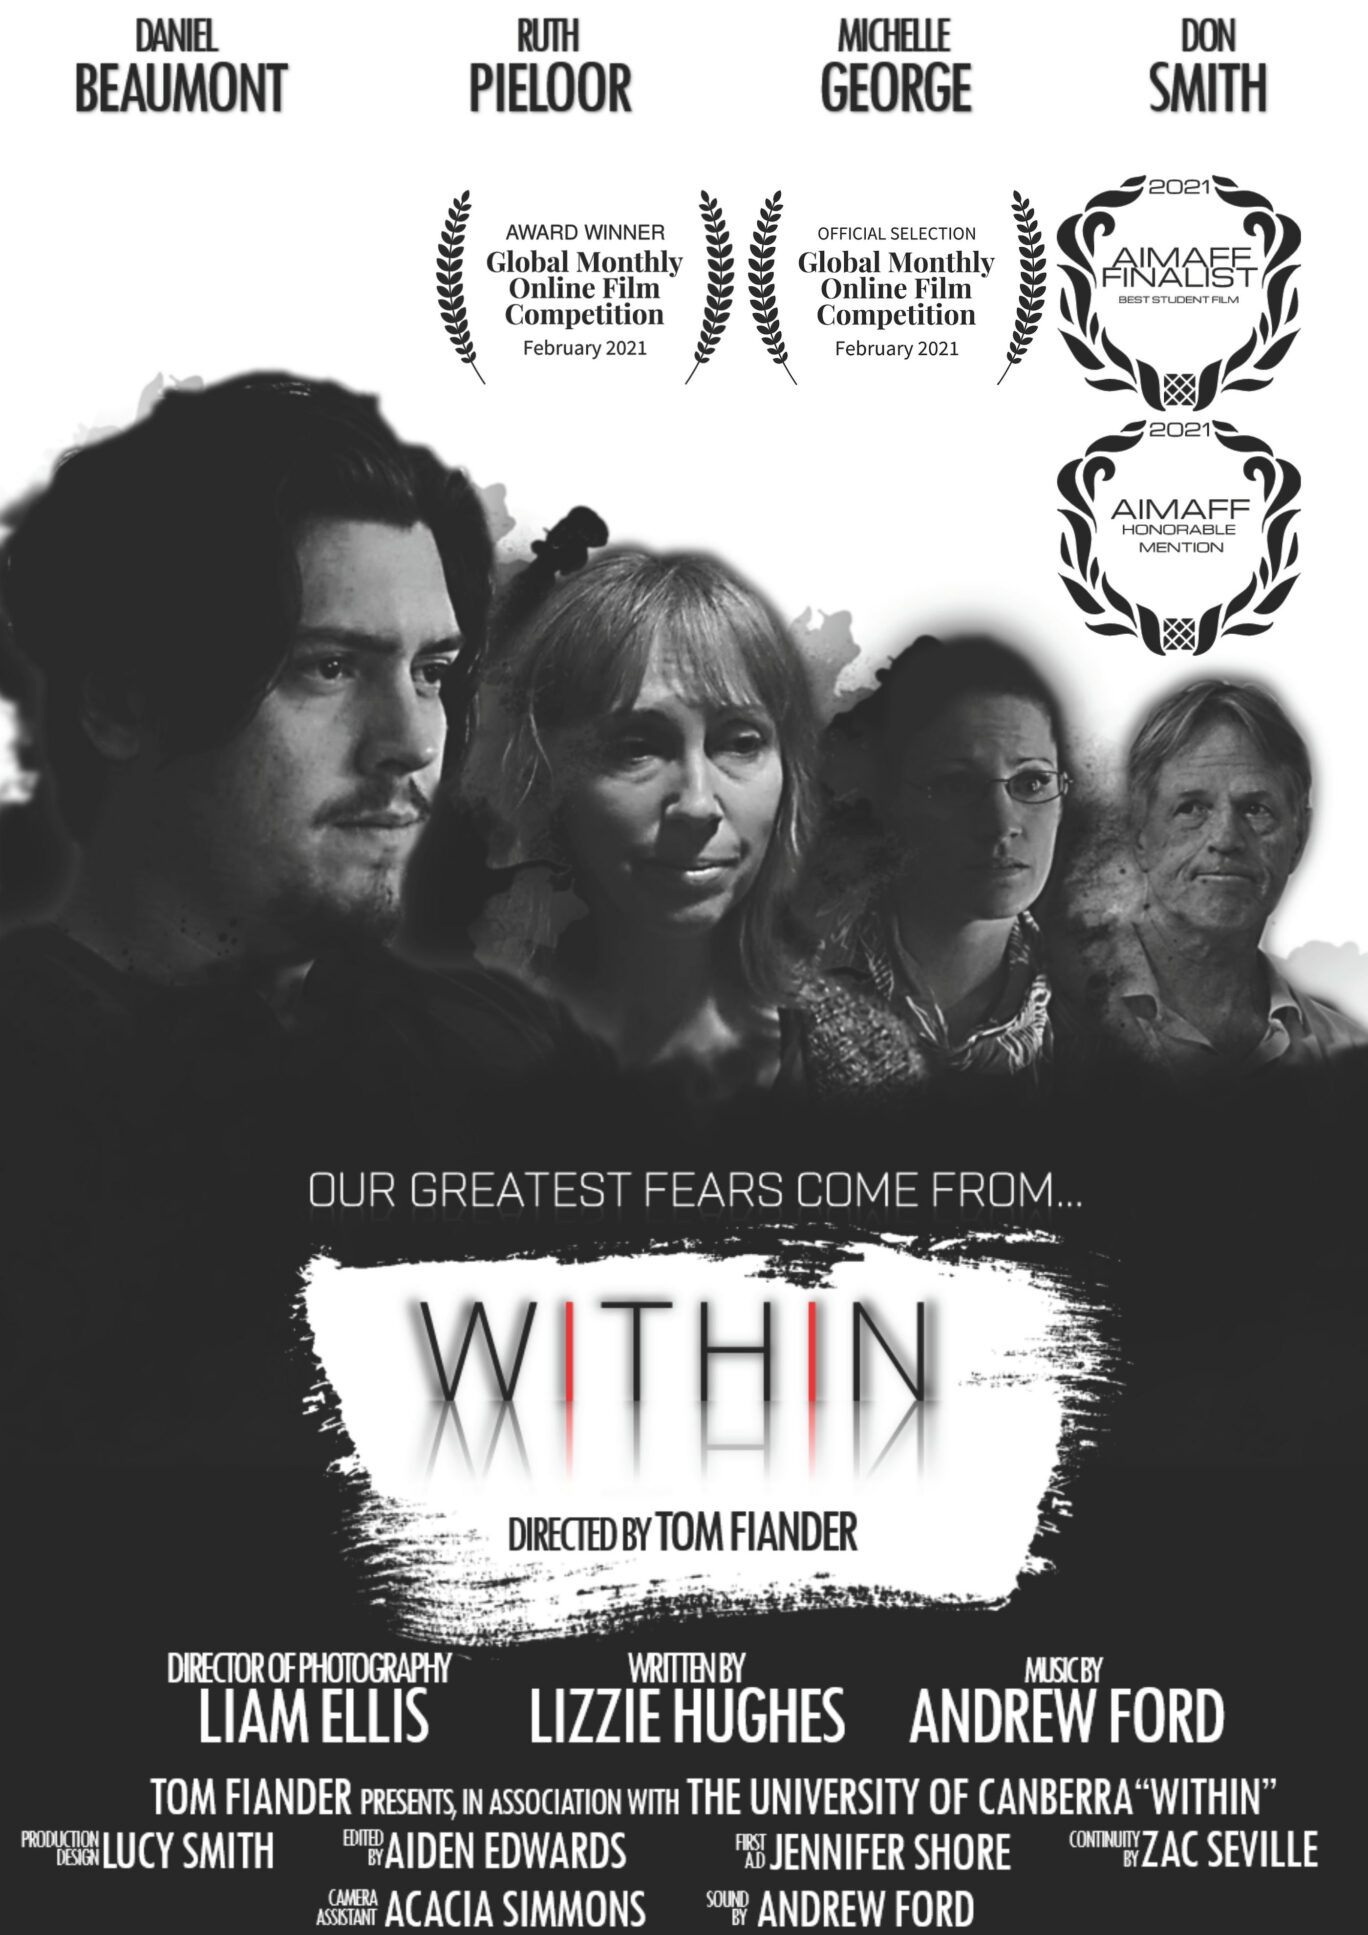 'Within' - Directed by Tom Fiander